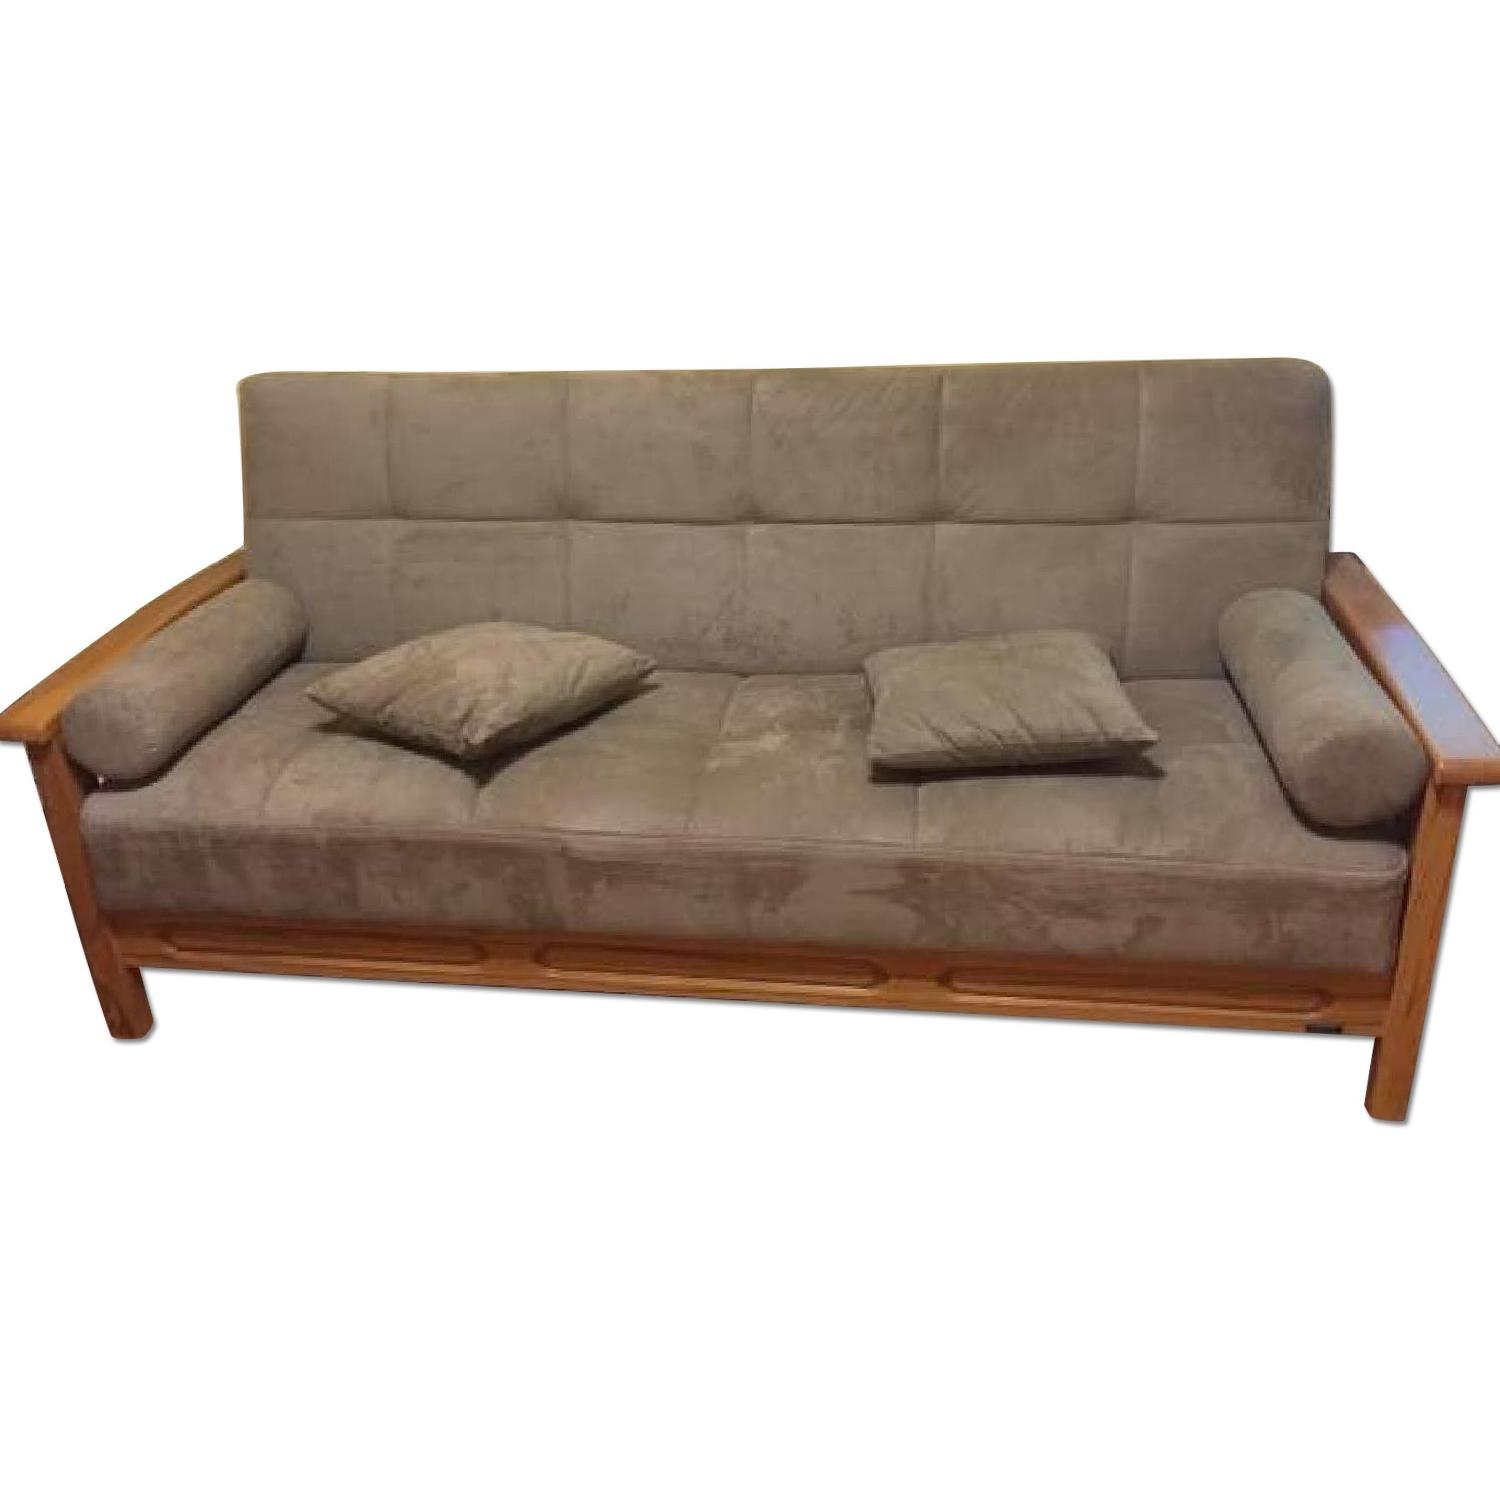 Convert-a-Couch Sofa Bed - image-0